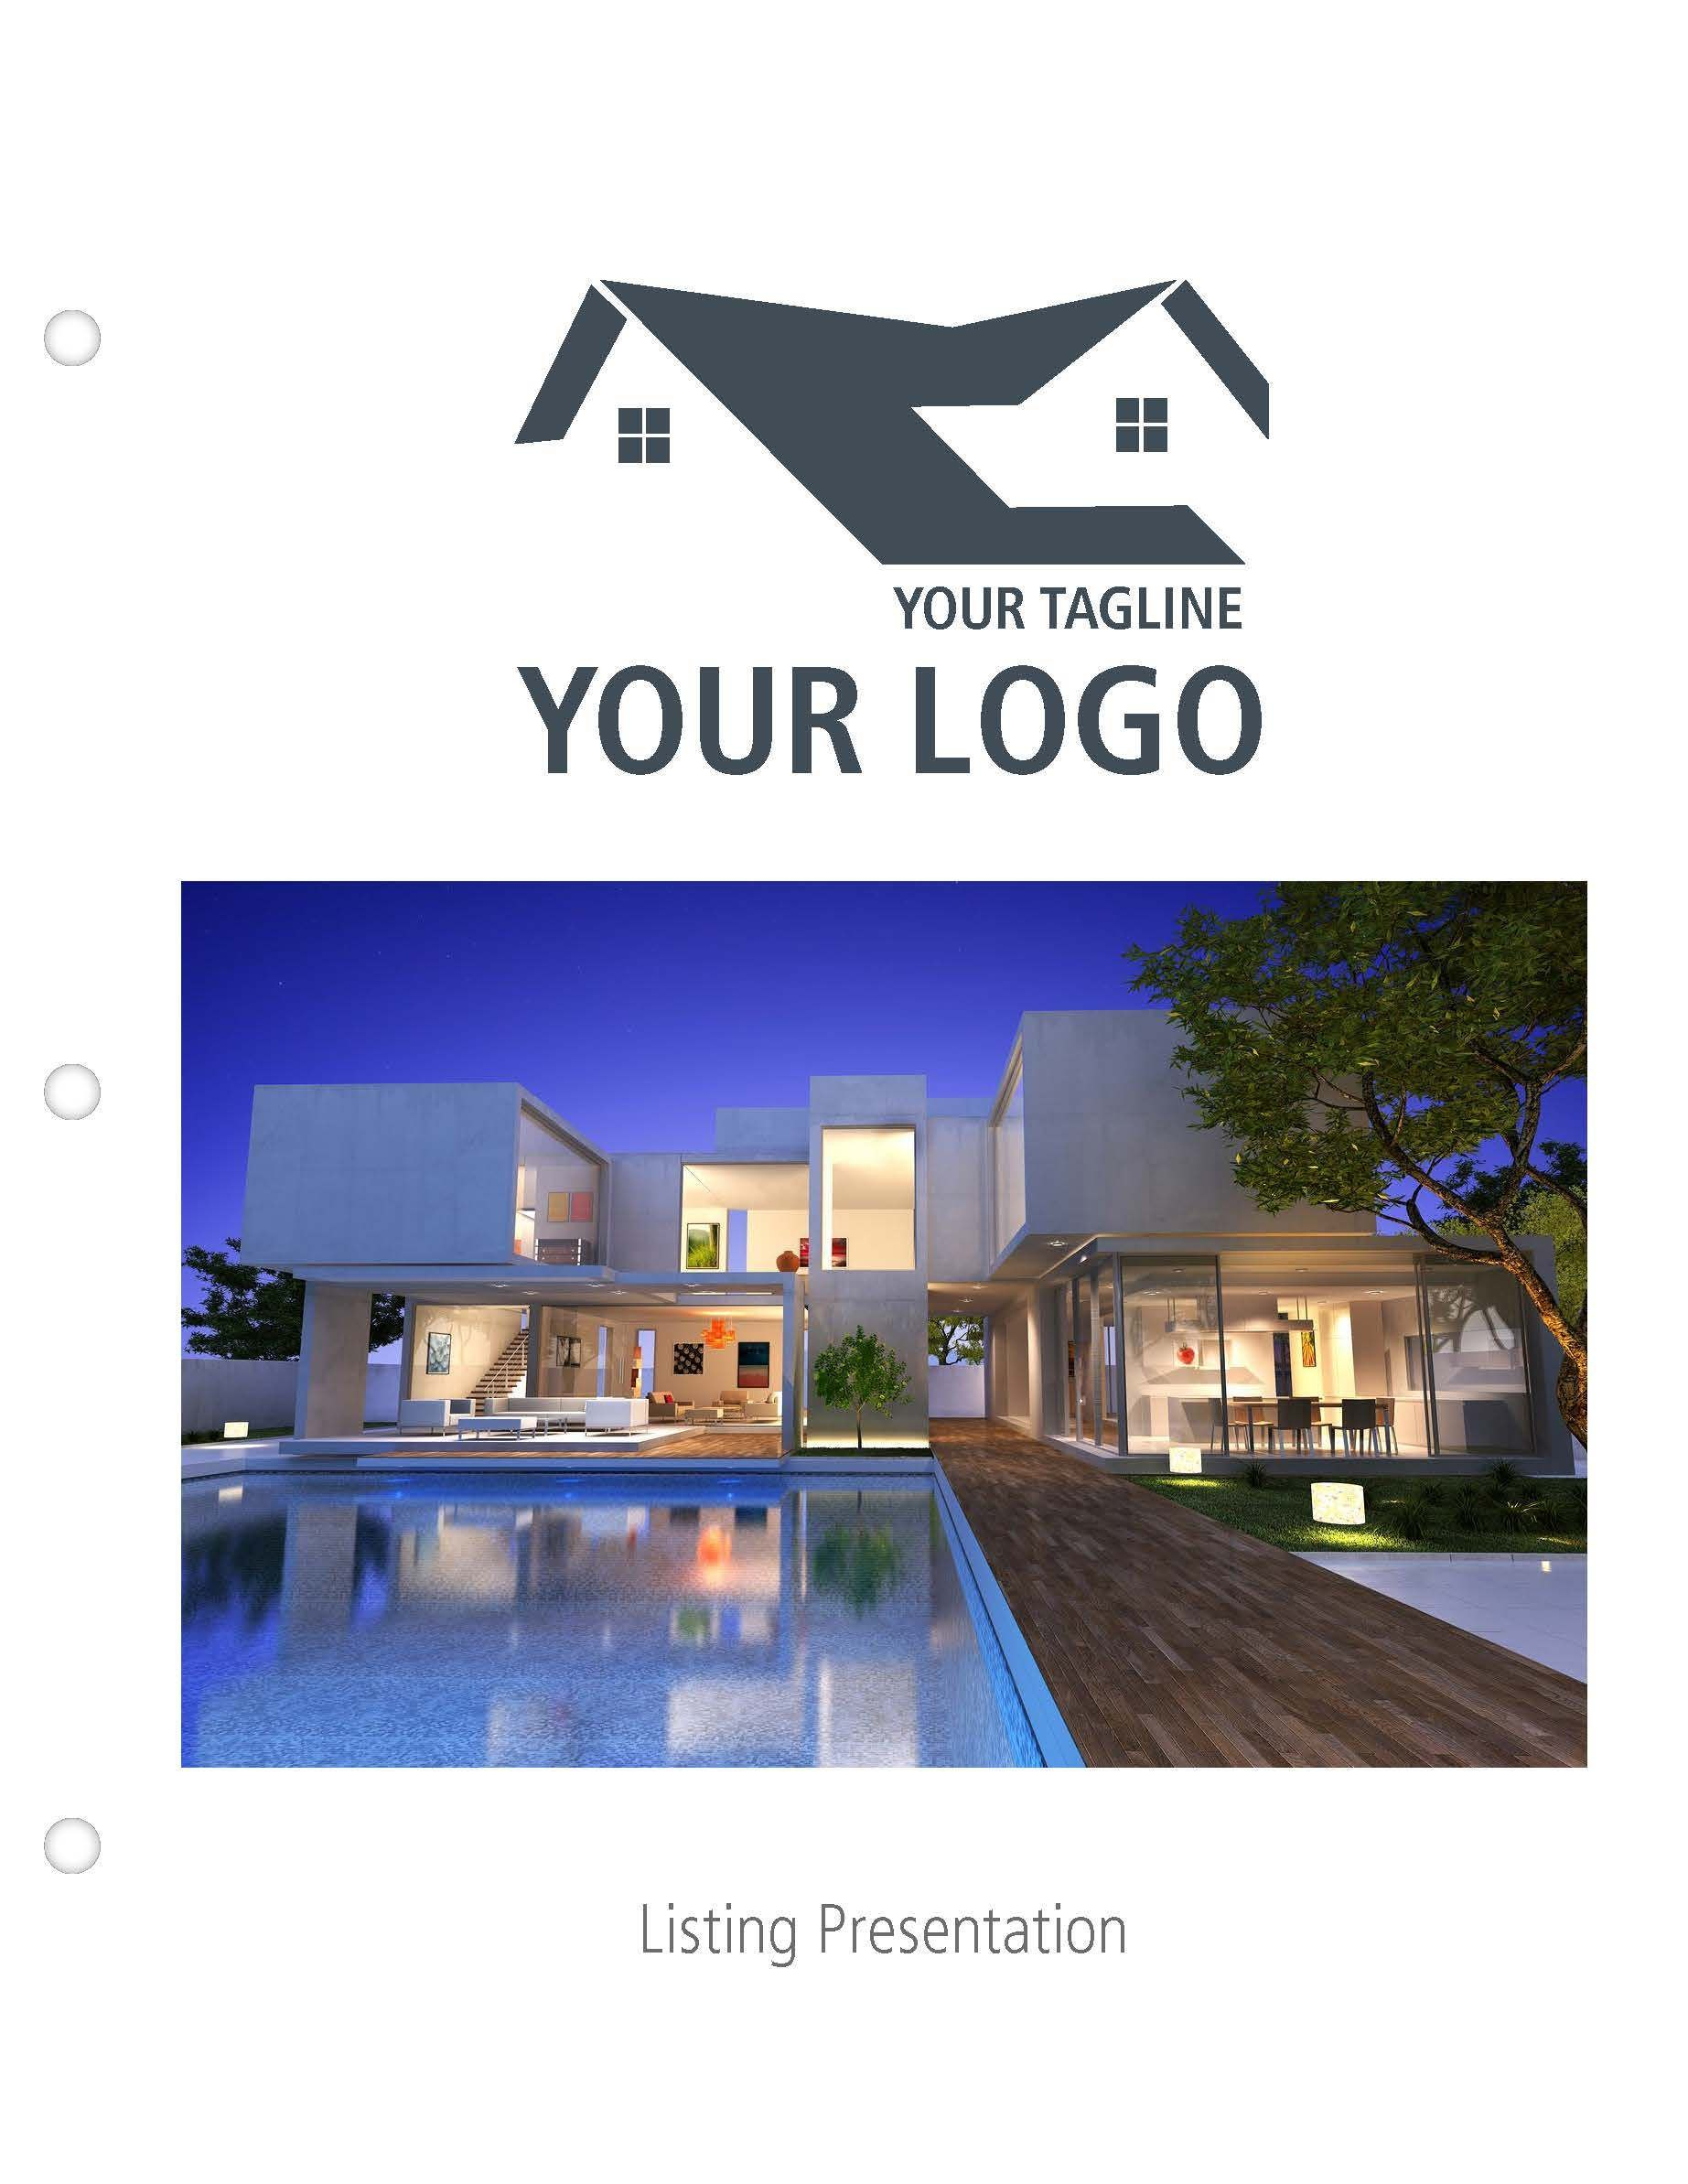 Realtor Listing Presentation Templatelimelight Marketing Pertaining To Listing Presentation Template